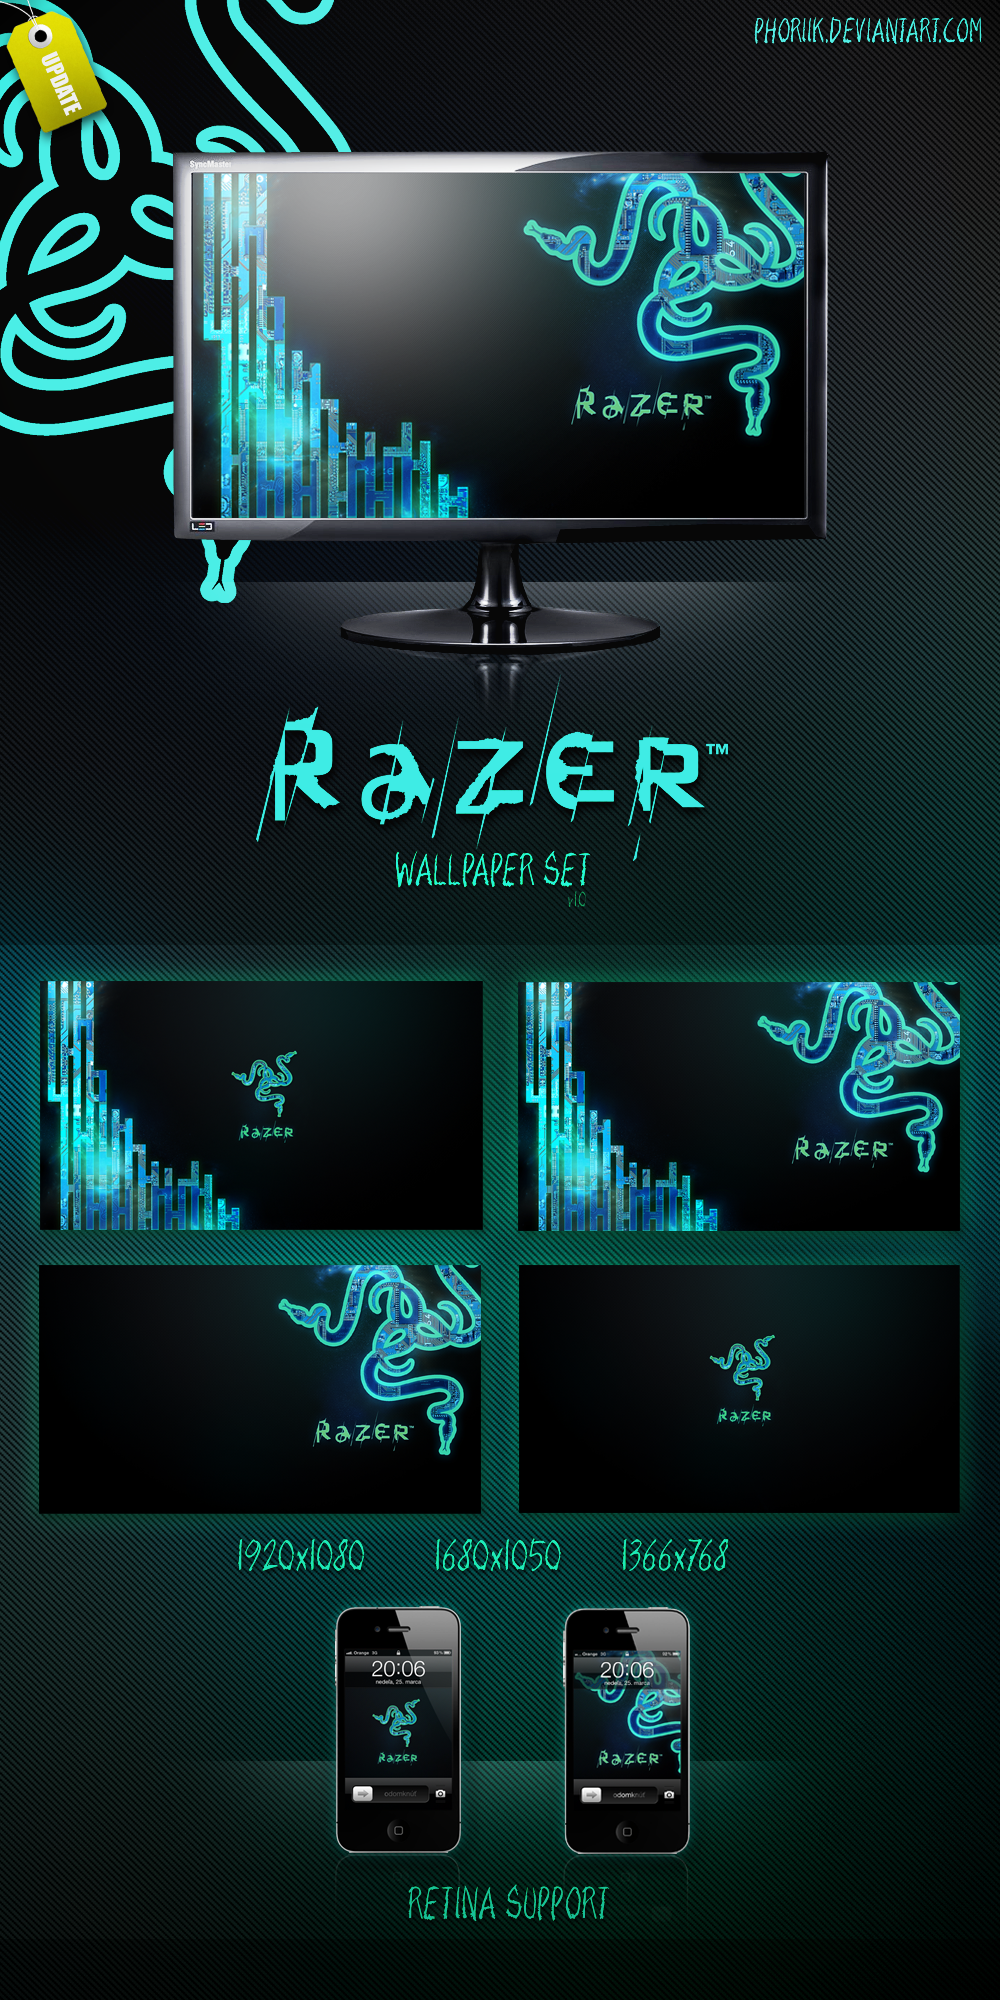 razer wallpaperset hd by luksykora on deviantart